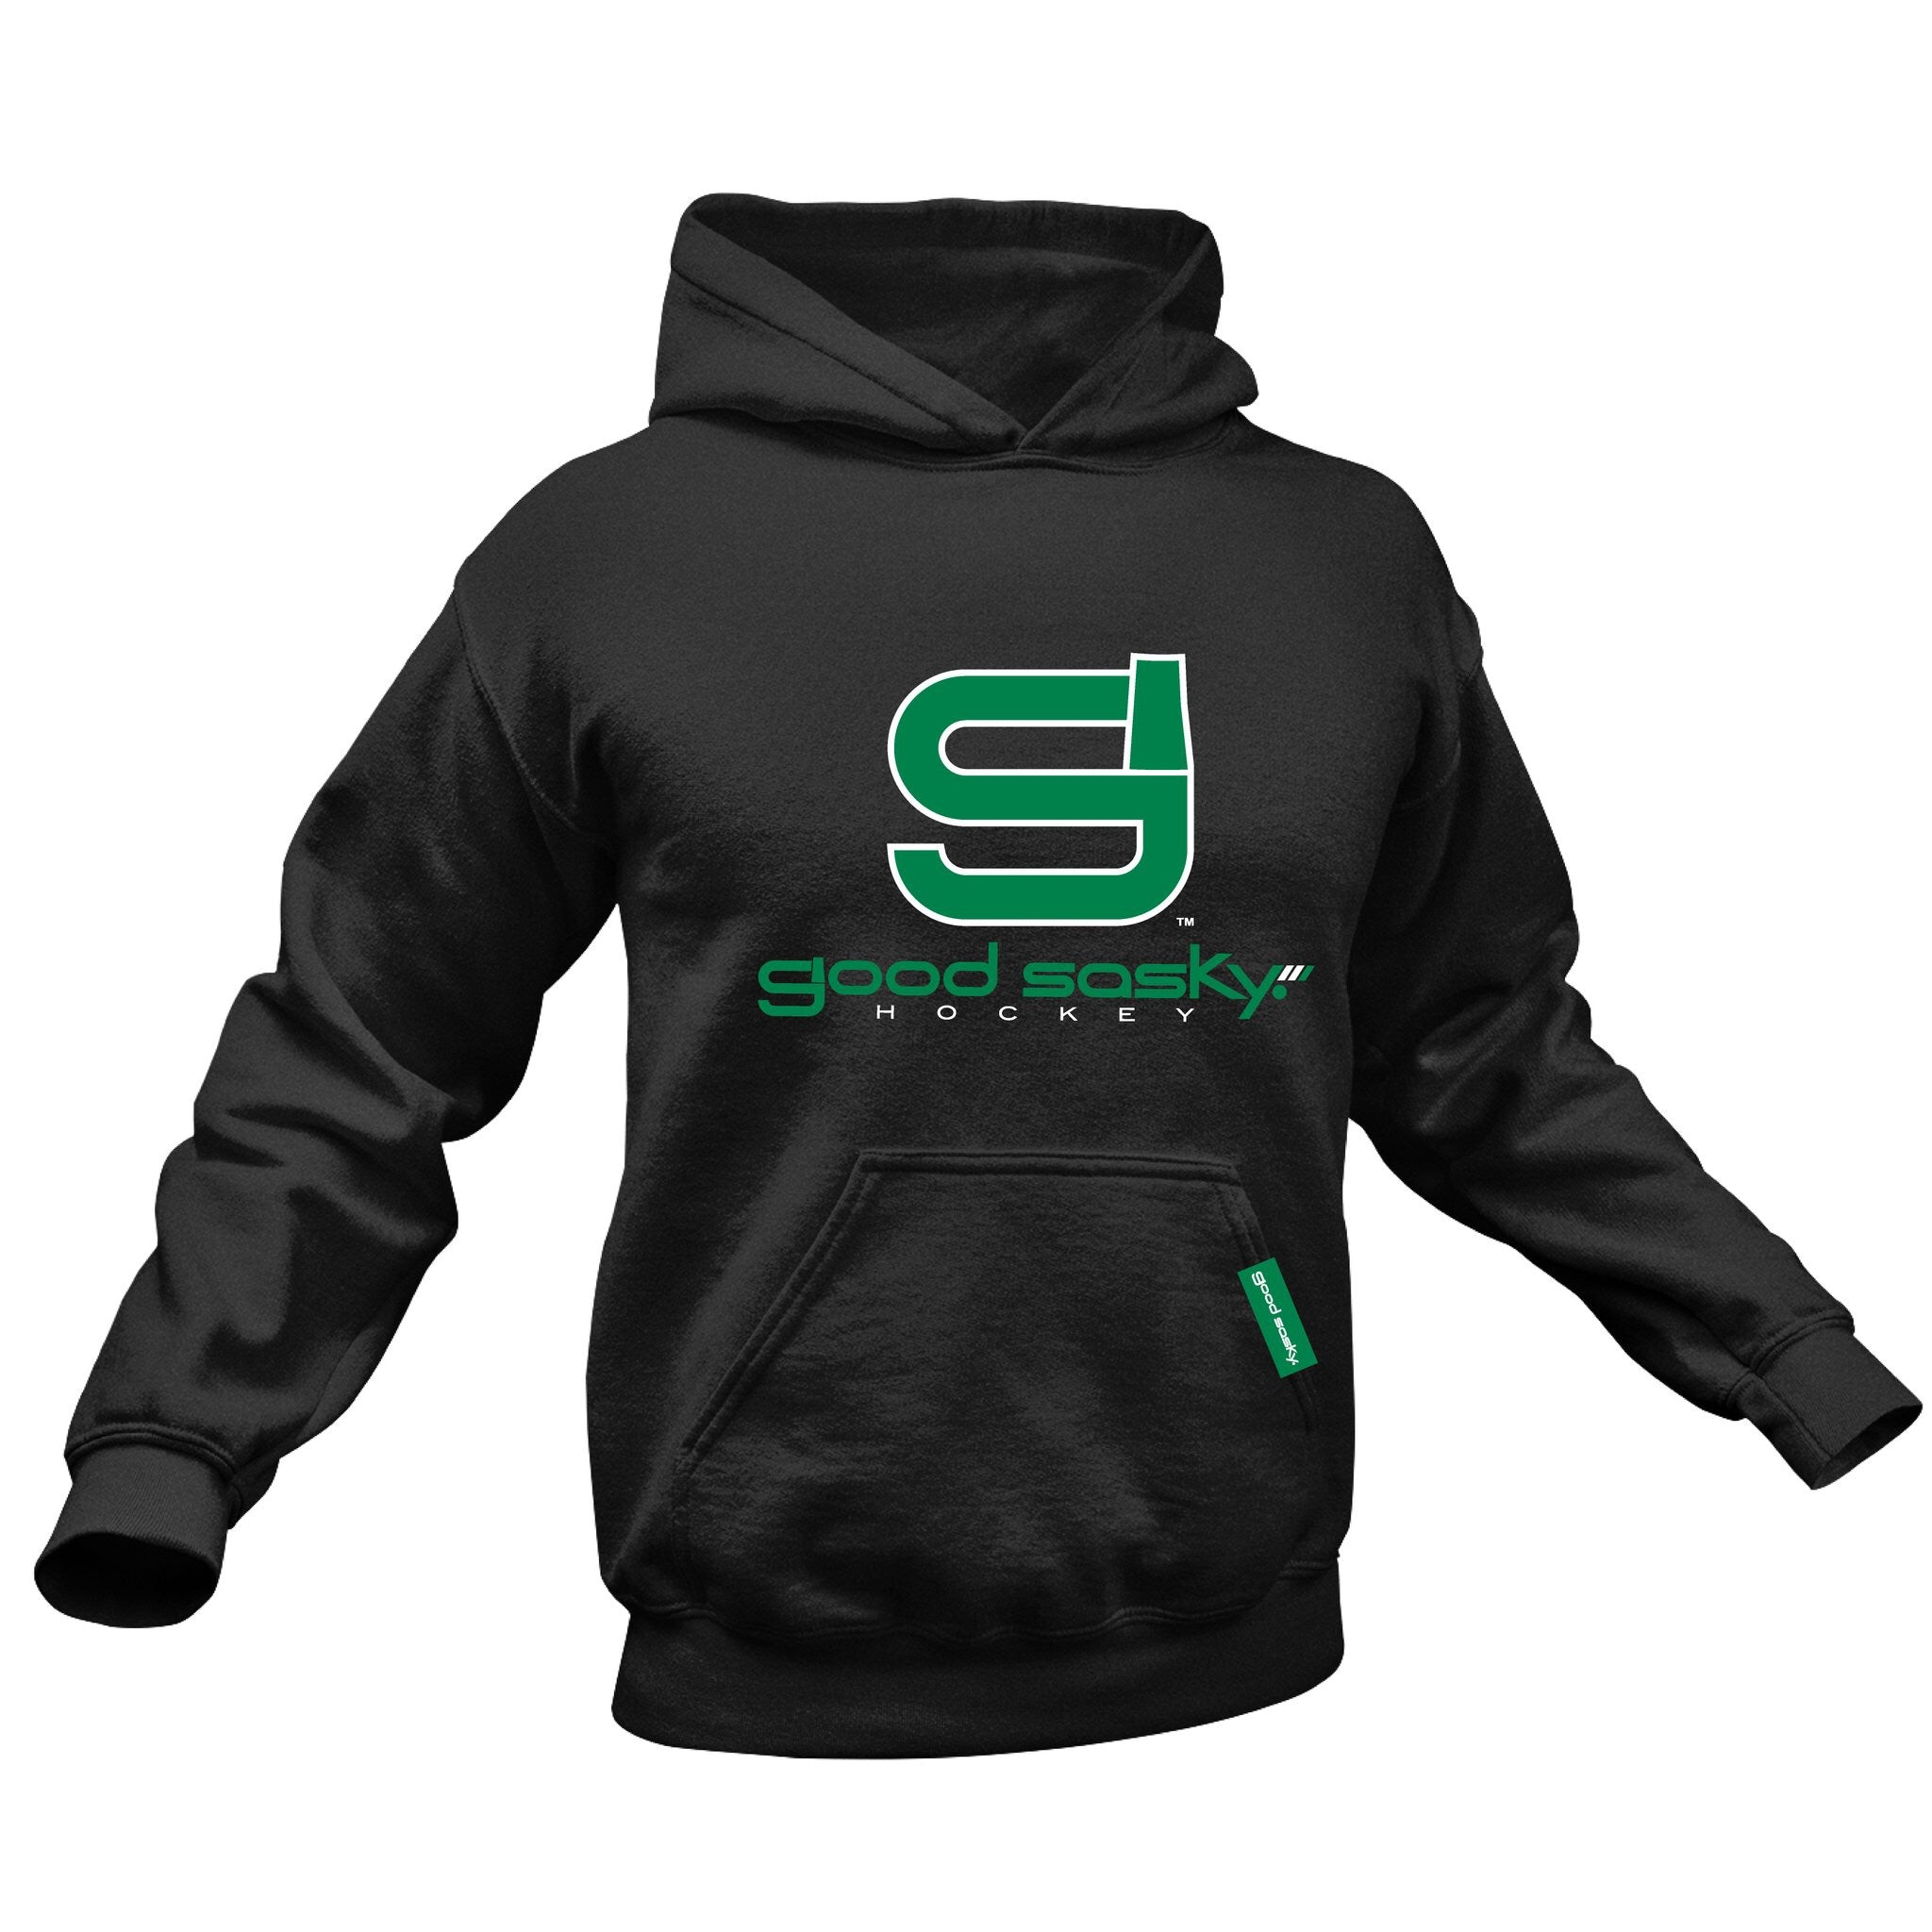 YOUTH HOCKEY UNISEX HOODIE